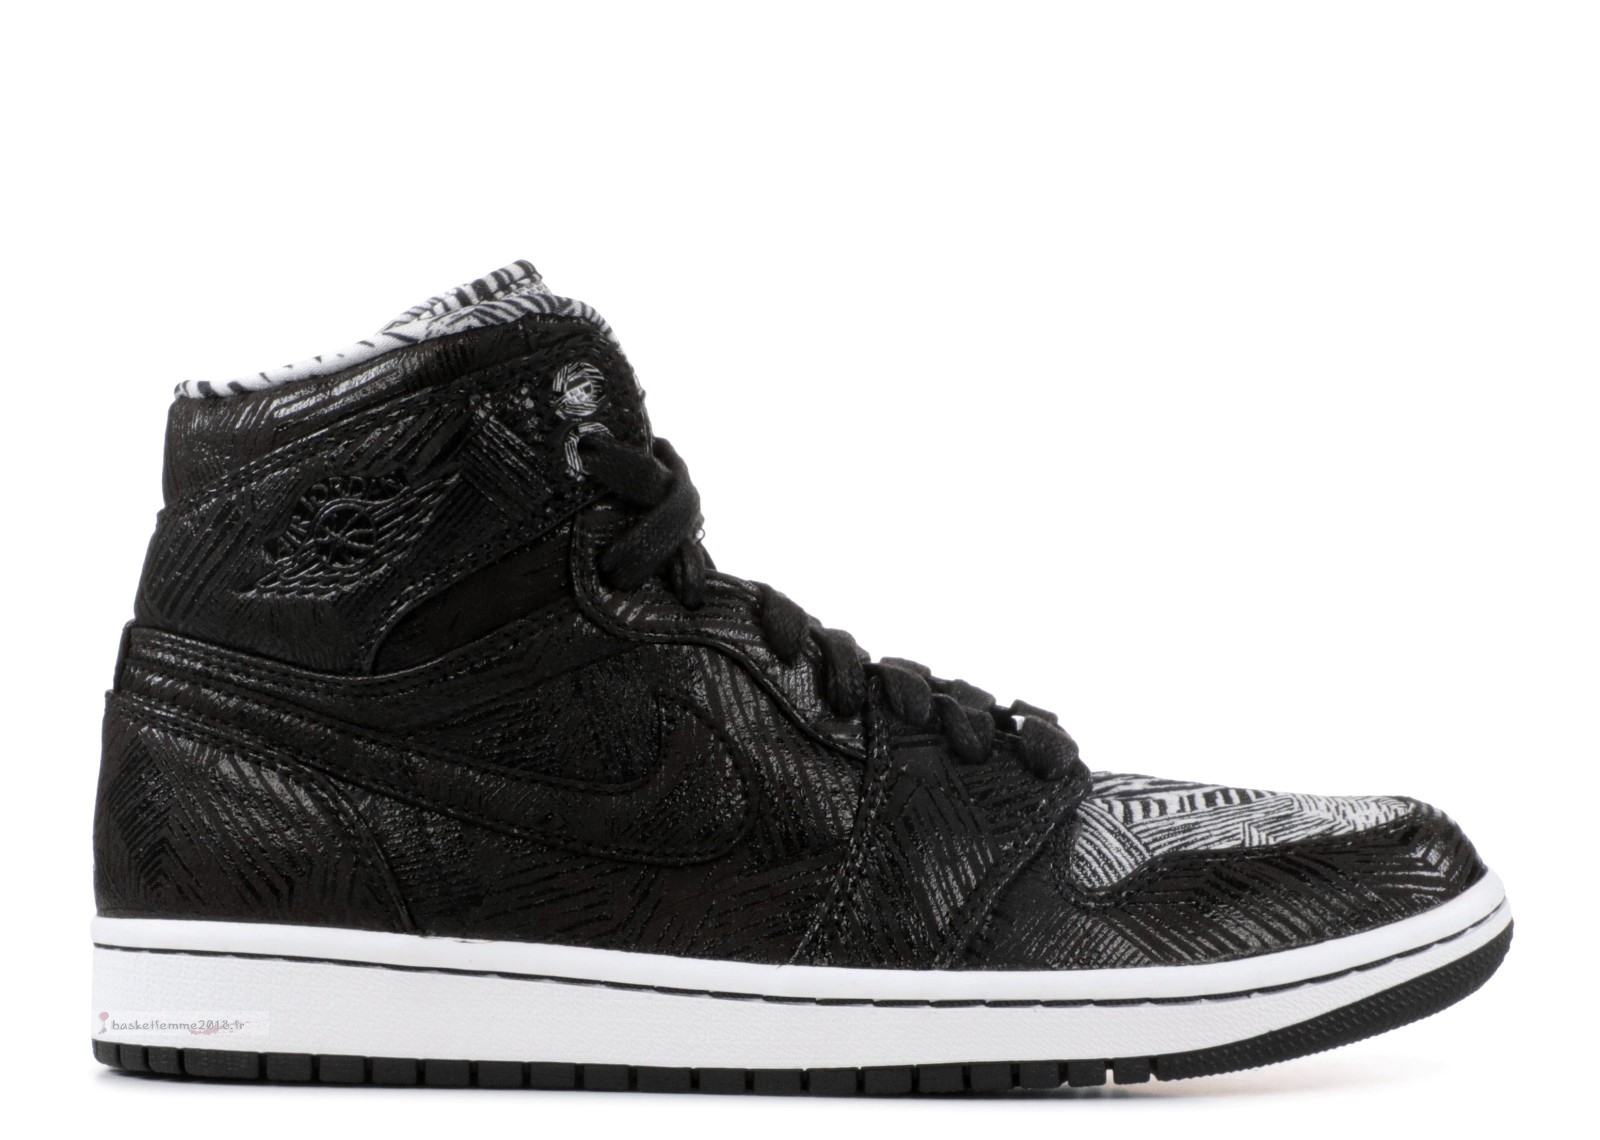 Air Jordan 1 Retro High Bhm Noir (579591-010) Chaussure de Basket